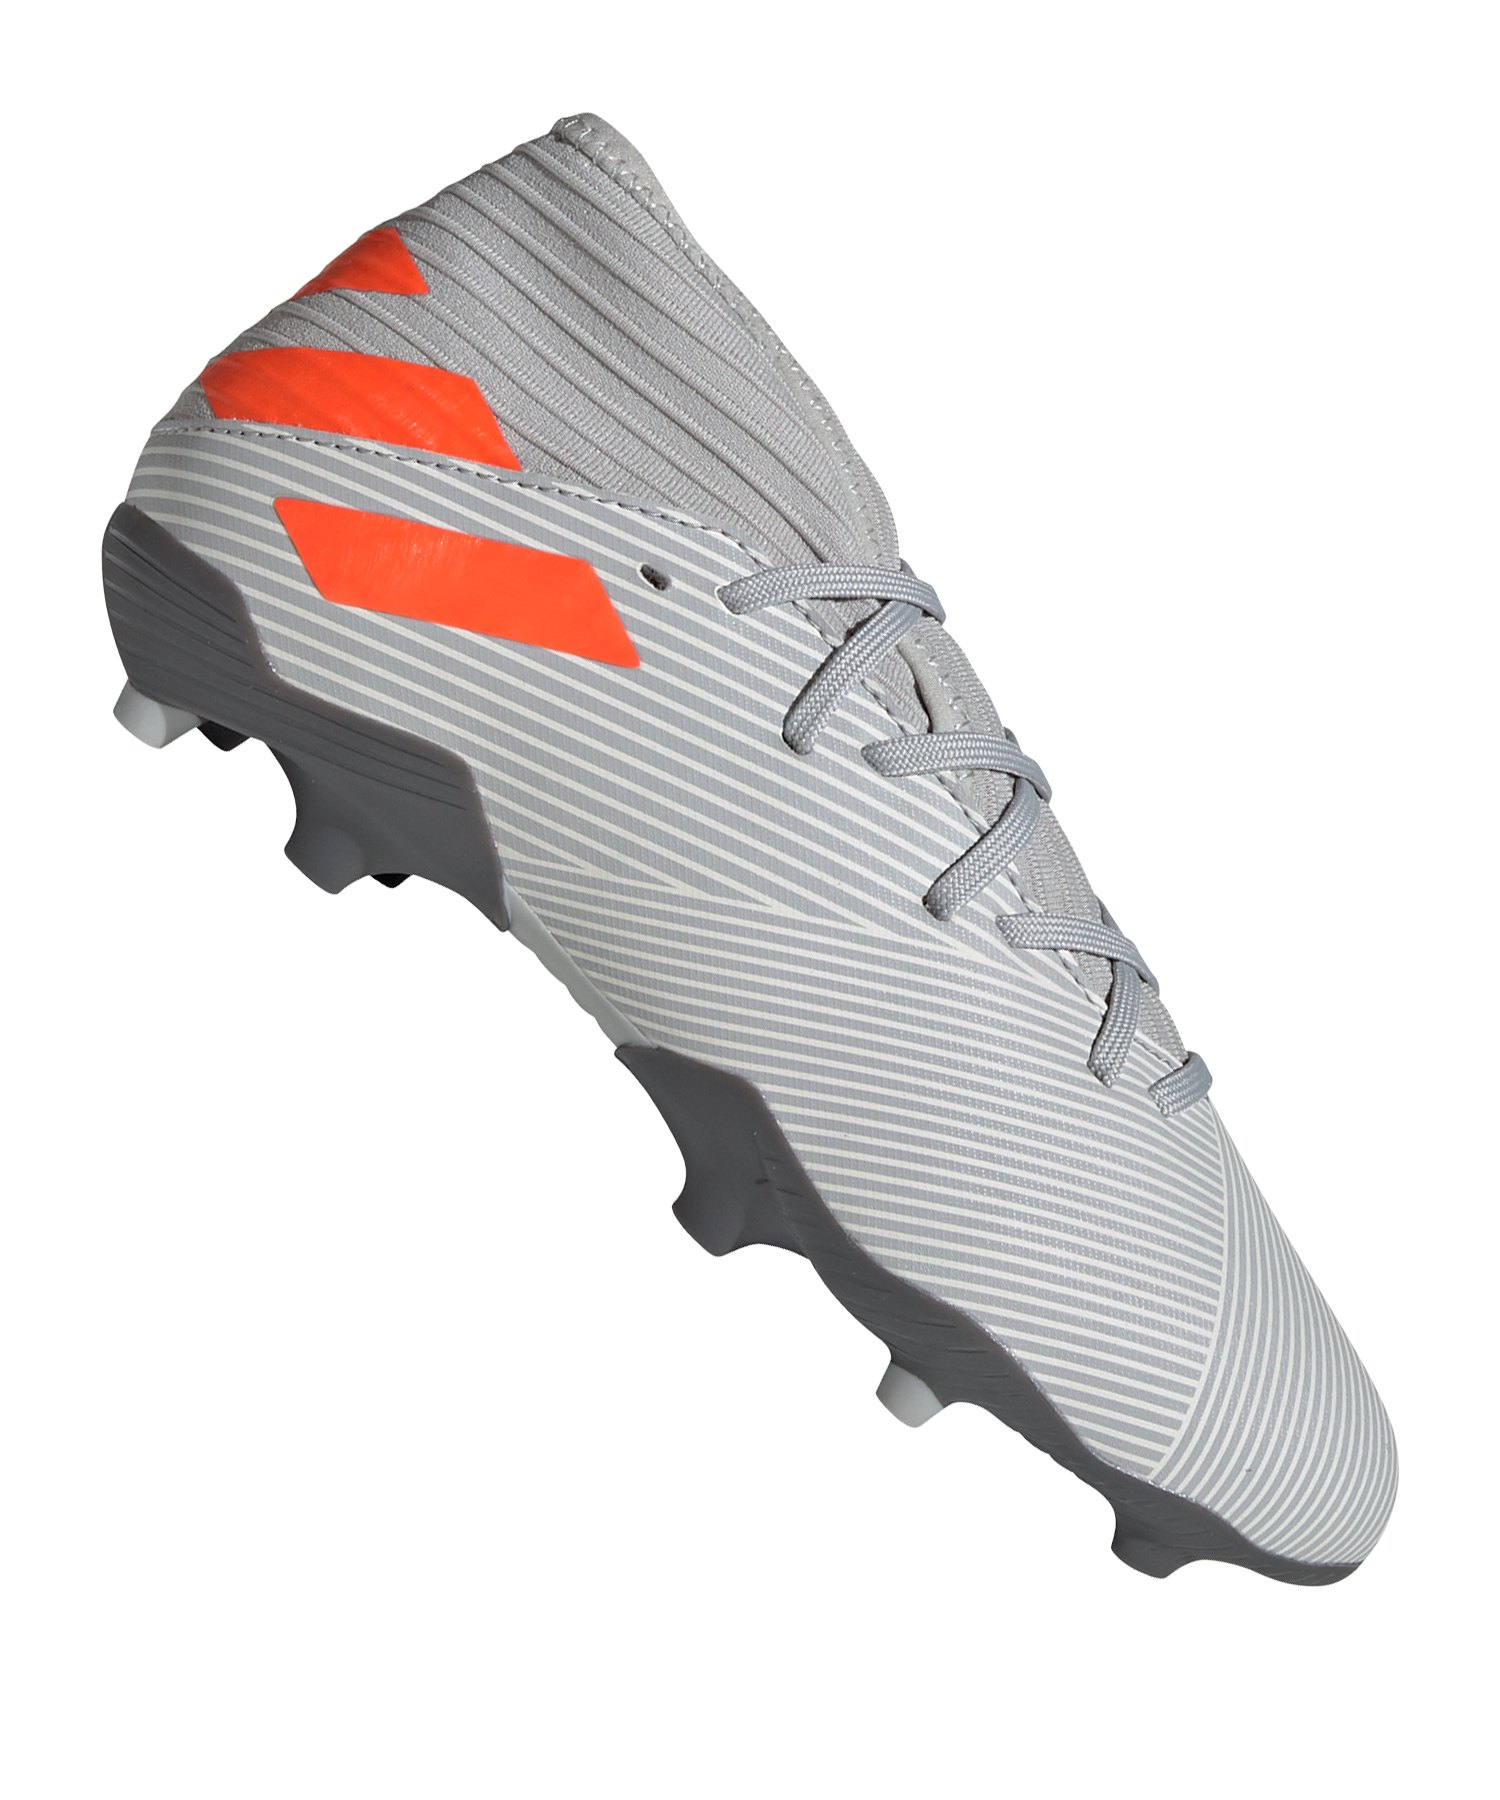 adidas NEMEZIZ 19.3 FG J Kids Grau Orange - grau